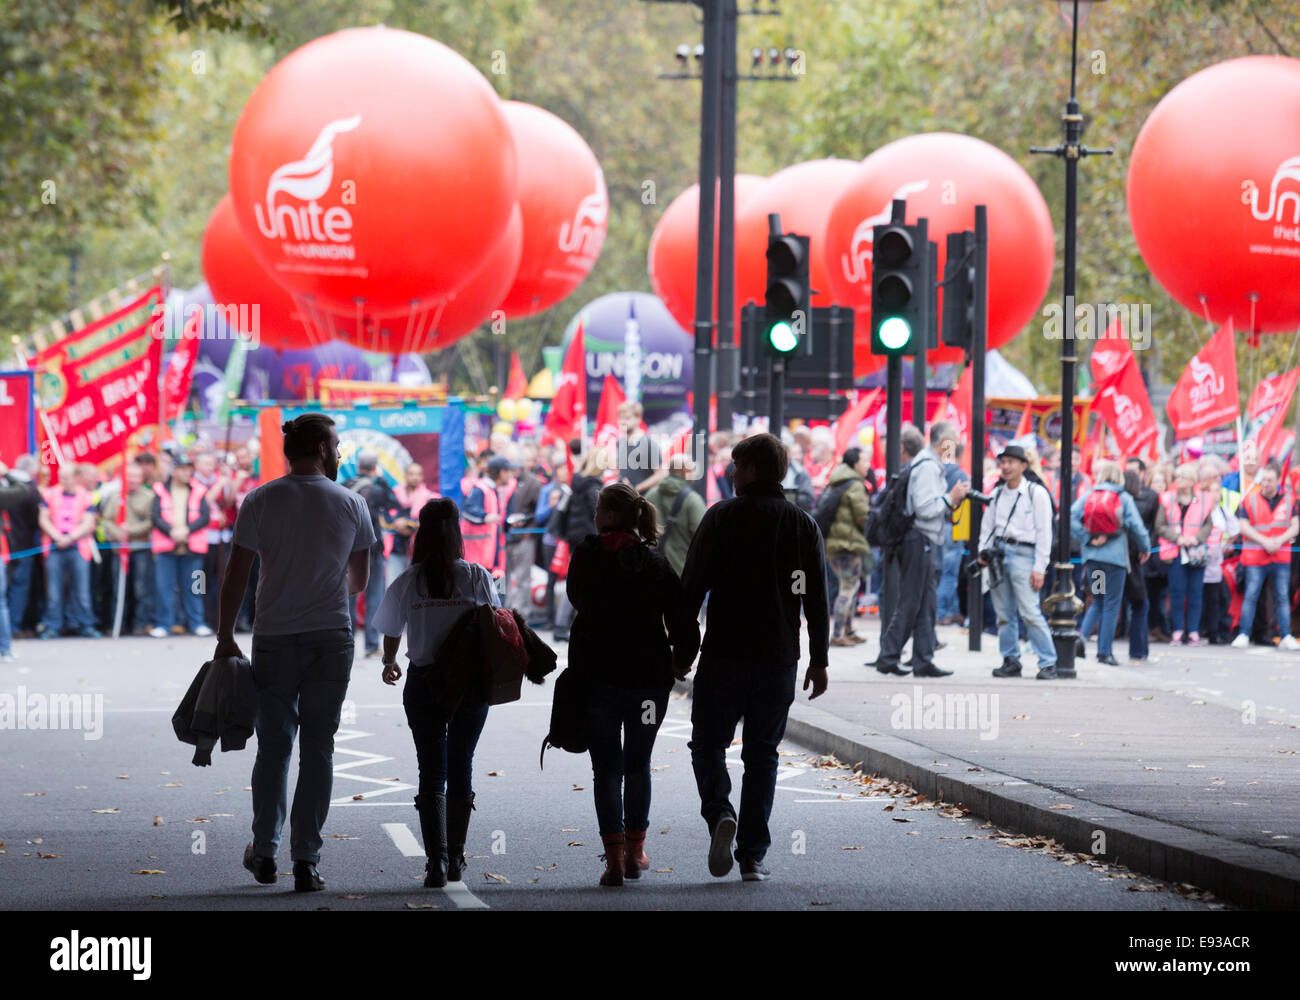 London, UK. 18 October 2014. People making their way to join the demonstration. Britain Needs A Payrise: TUC national - Stock Image